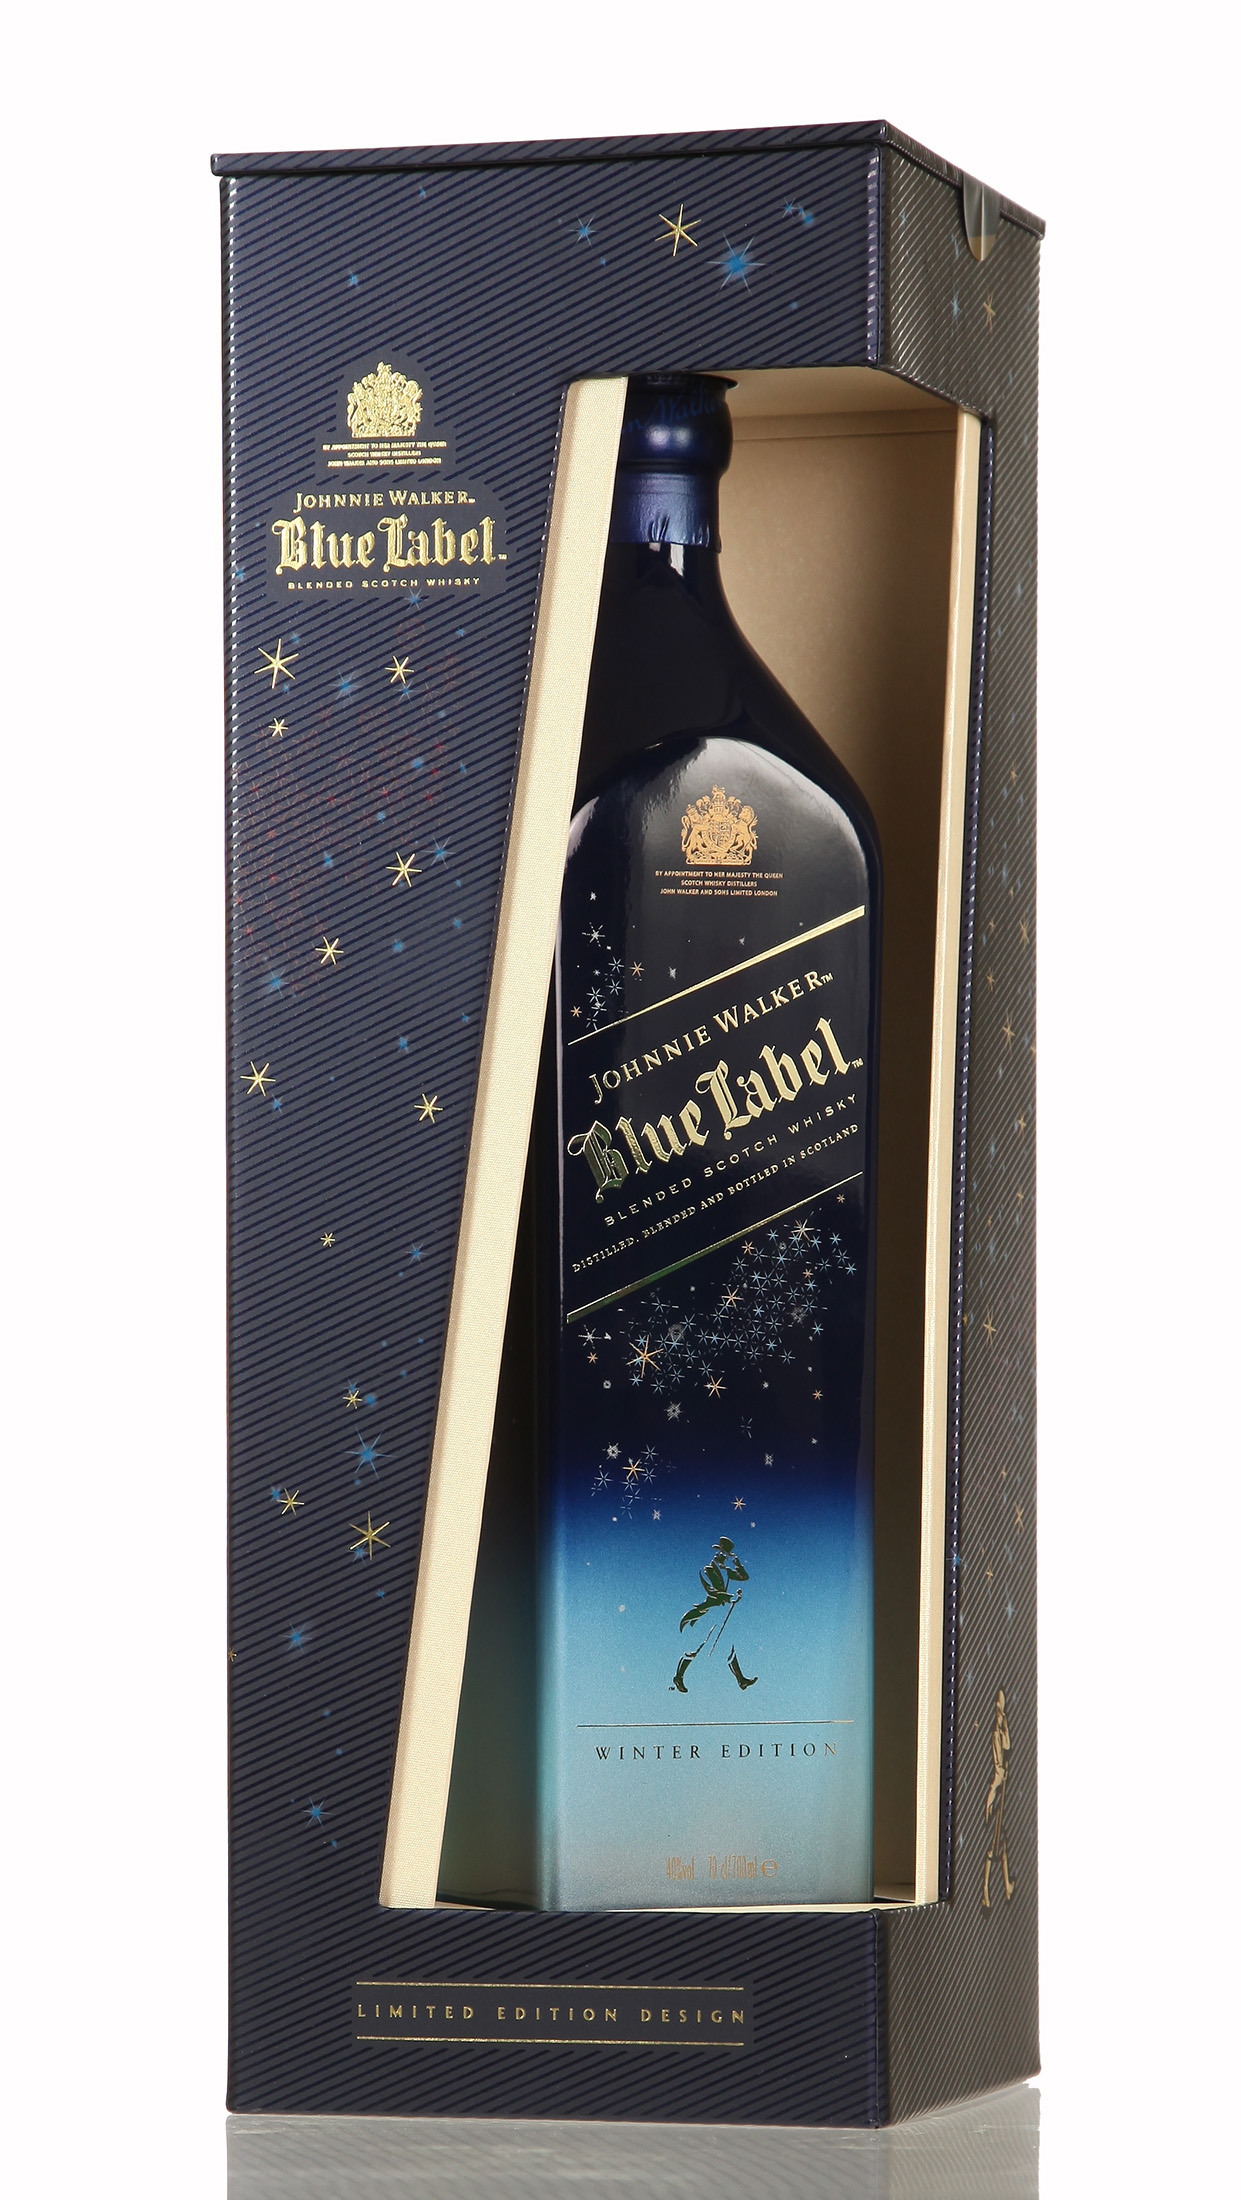 Johnnie Walker Blue Label Winter-Edition